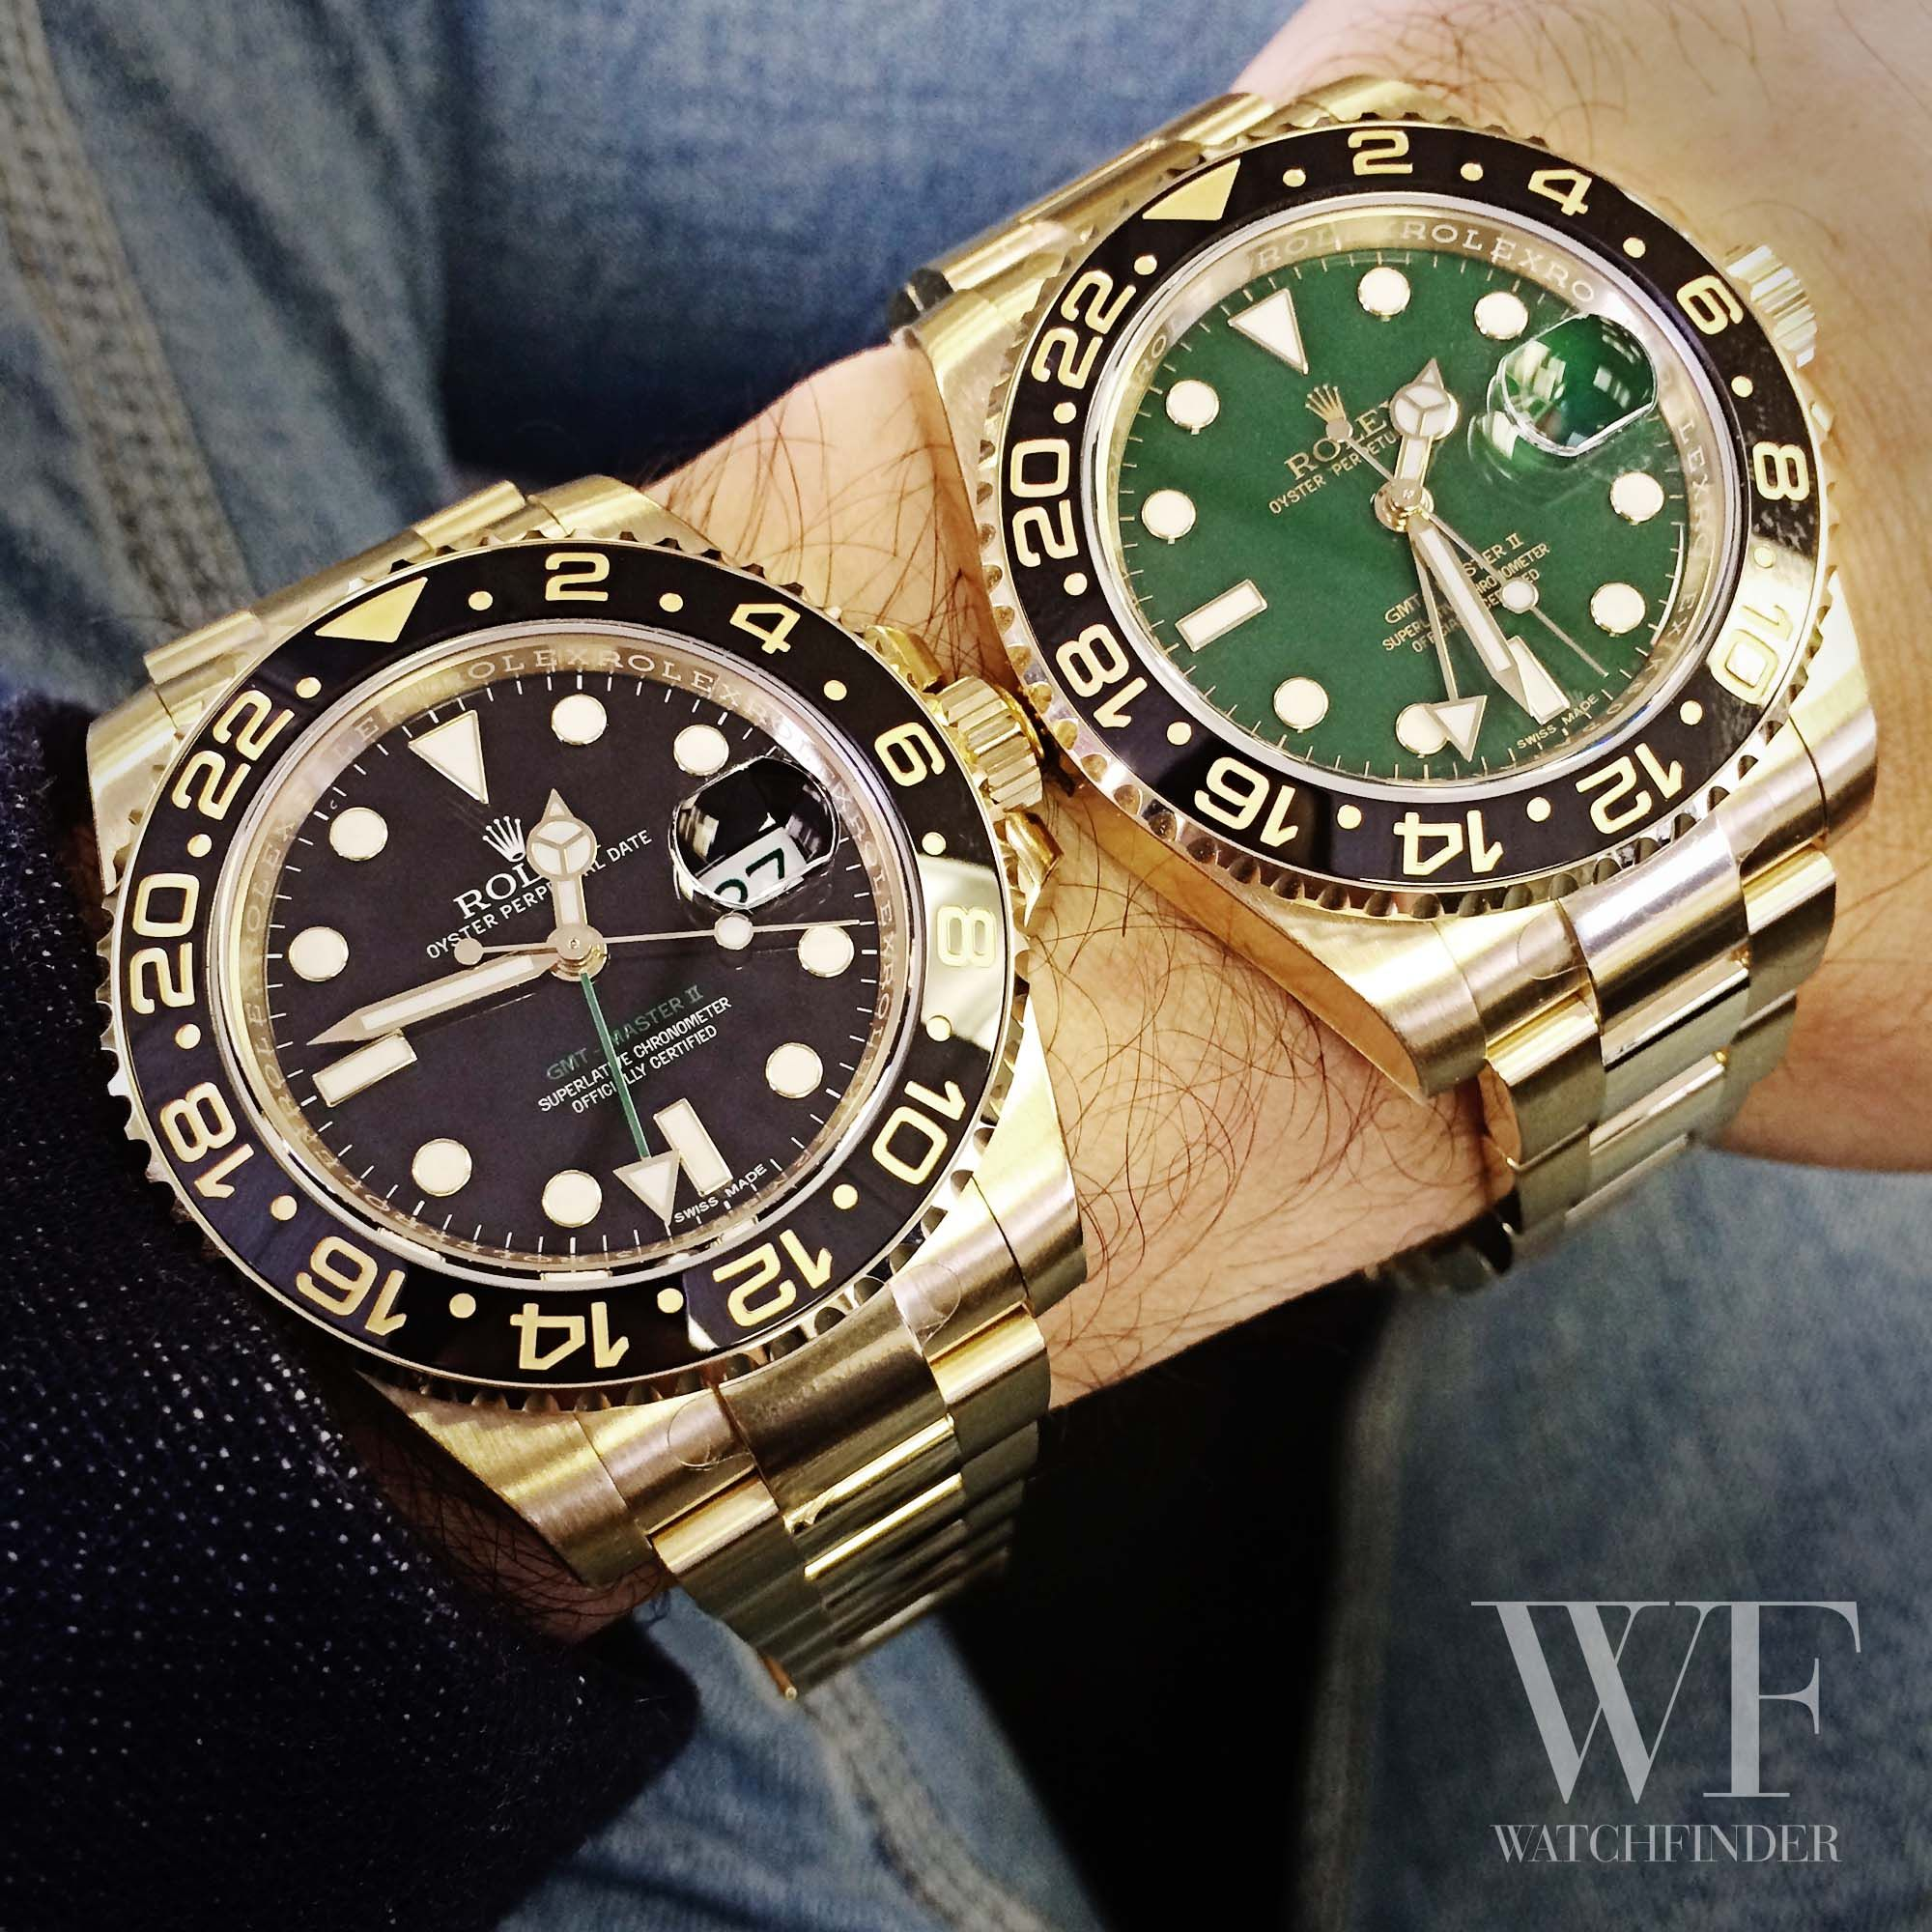 Decisions, decisions... Rolex GMT Master II in black or green?